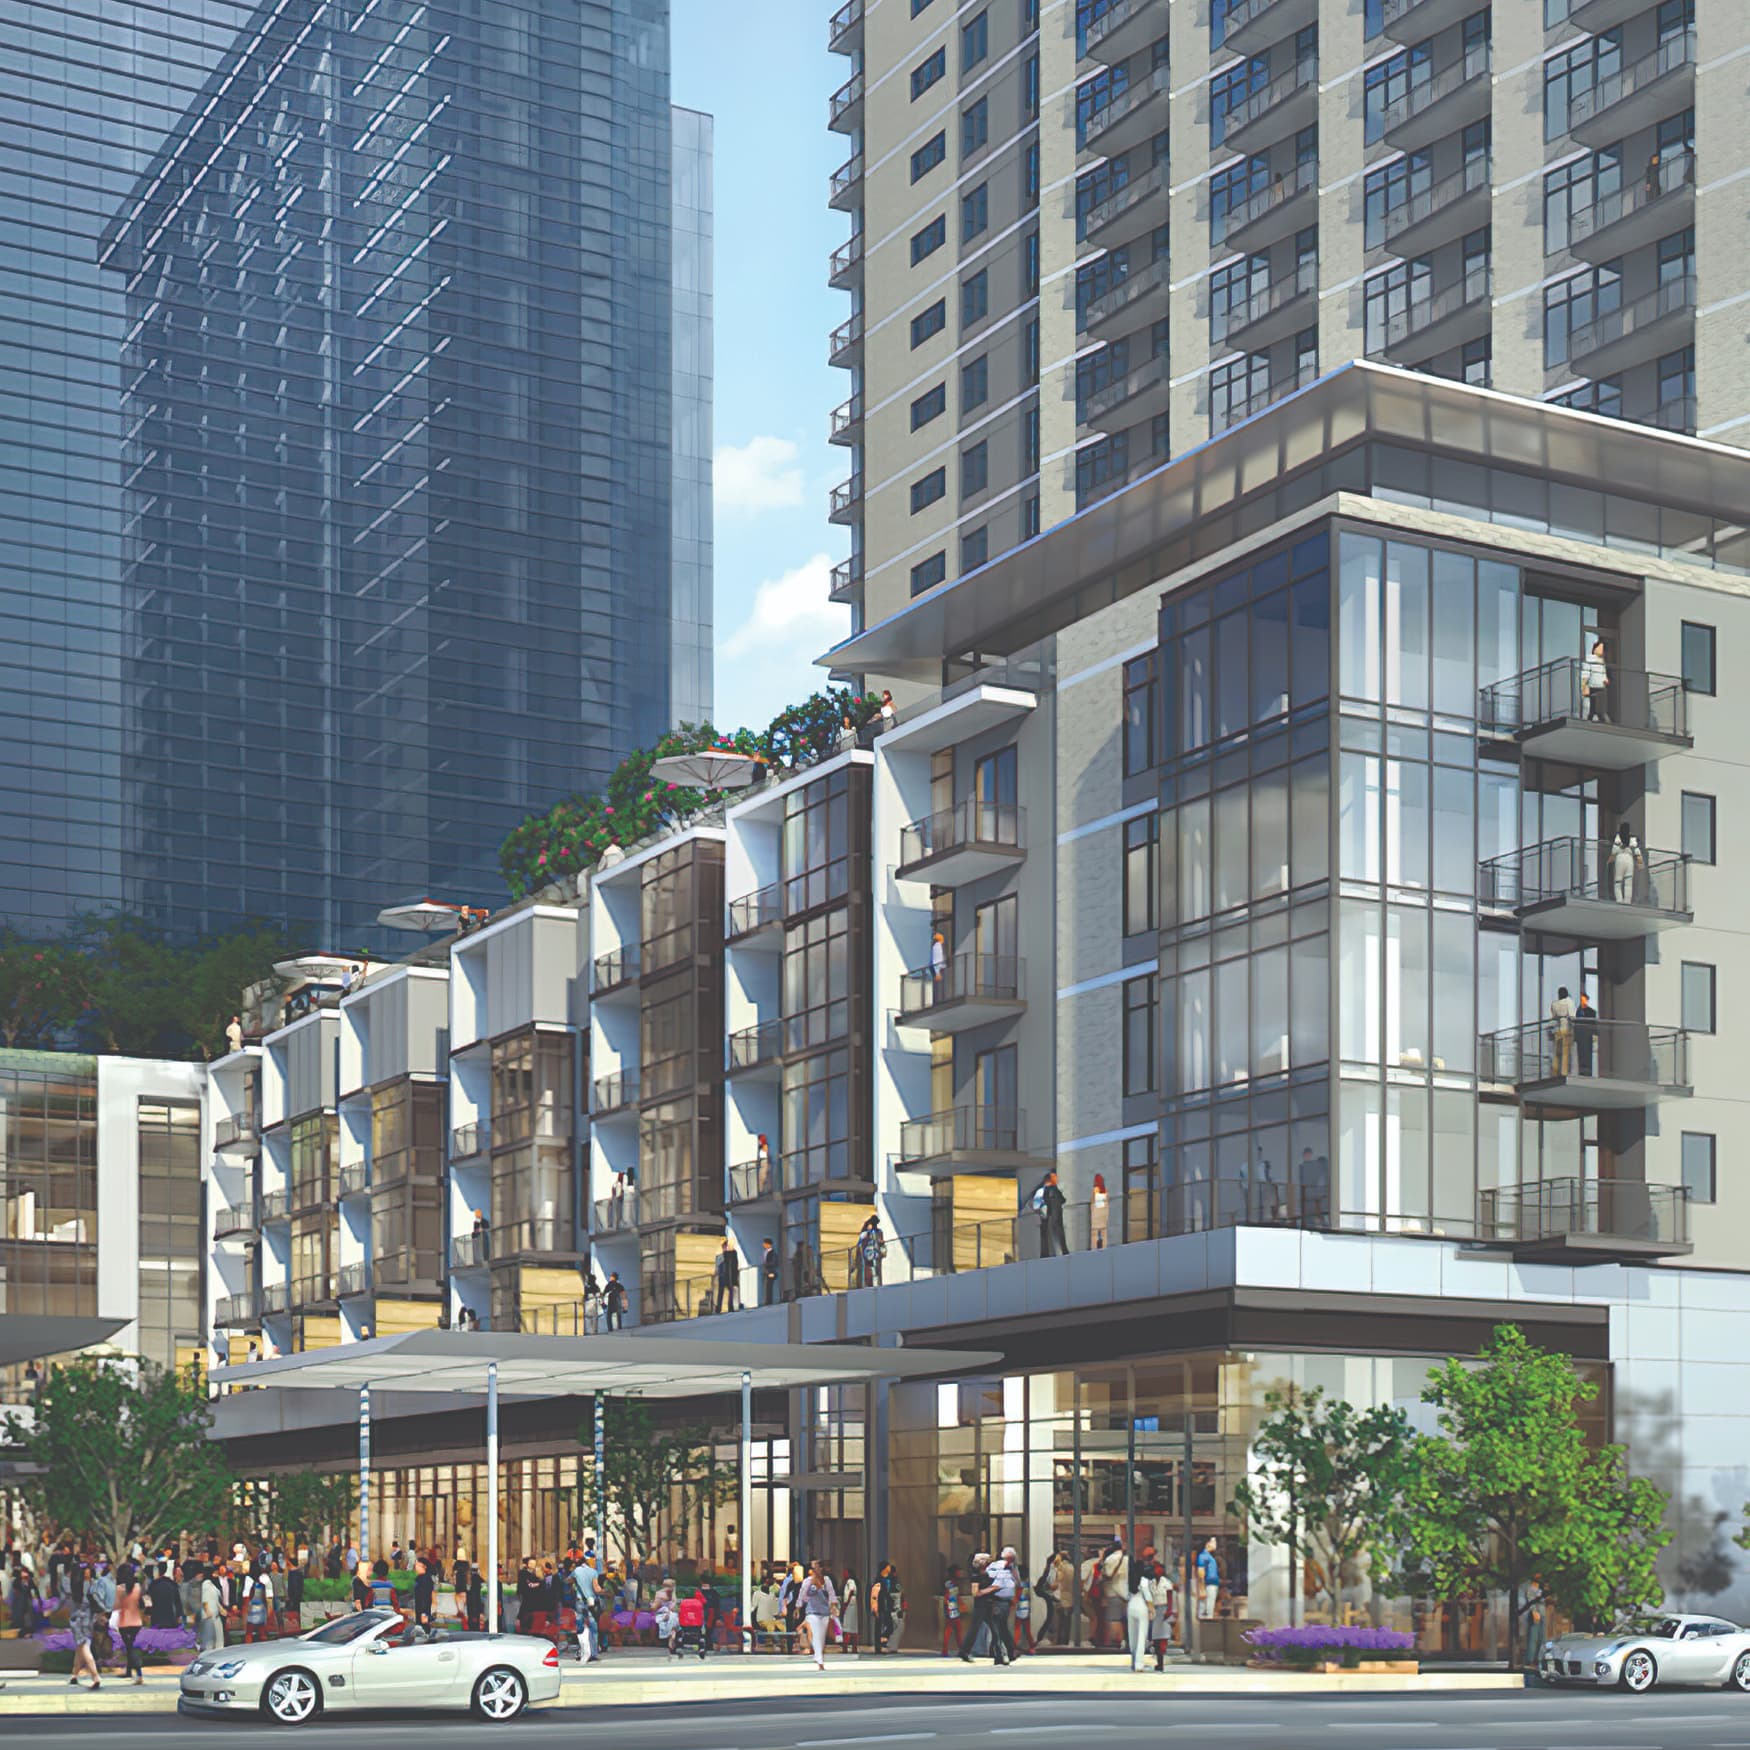 A rendering of architecture at The Union. Downtown City scape project in Dallas Texas.